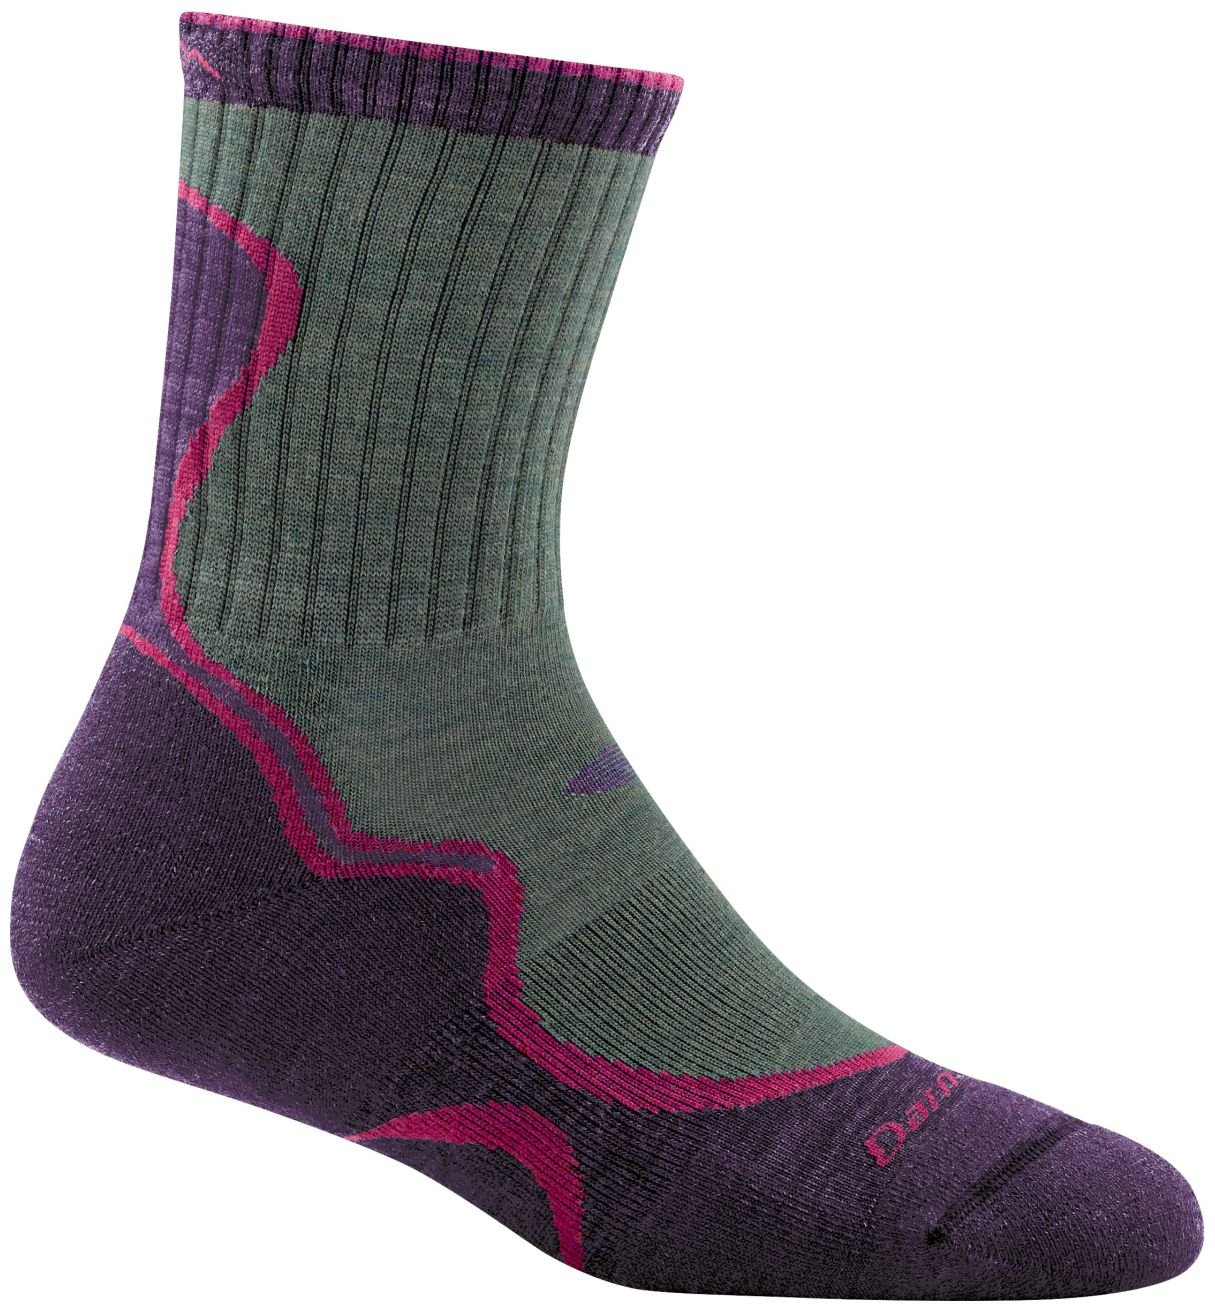 Darn Tough Light Hiker Micro Crew Light Cushion Socks - Women's Moss/Eggplant Large by Darn Tough